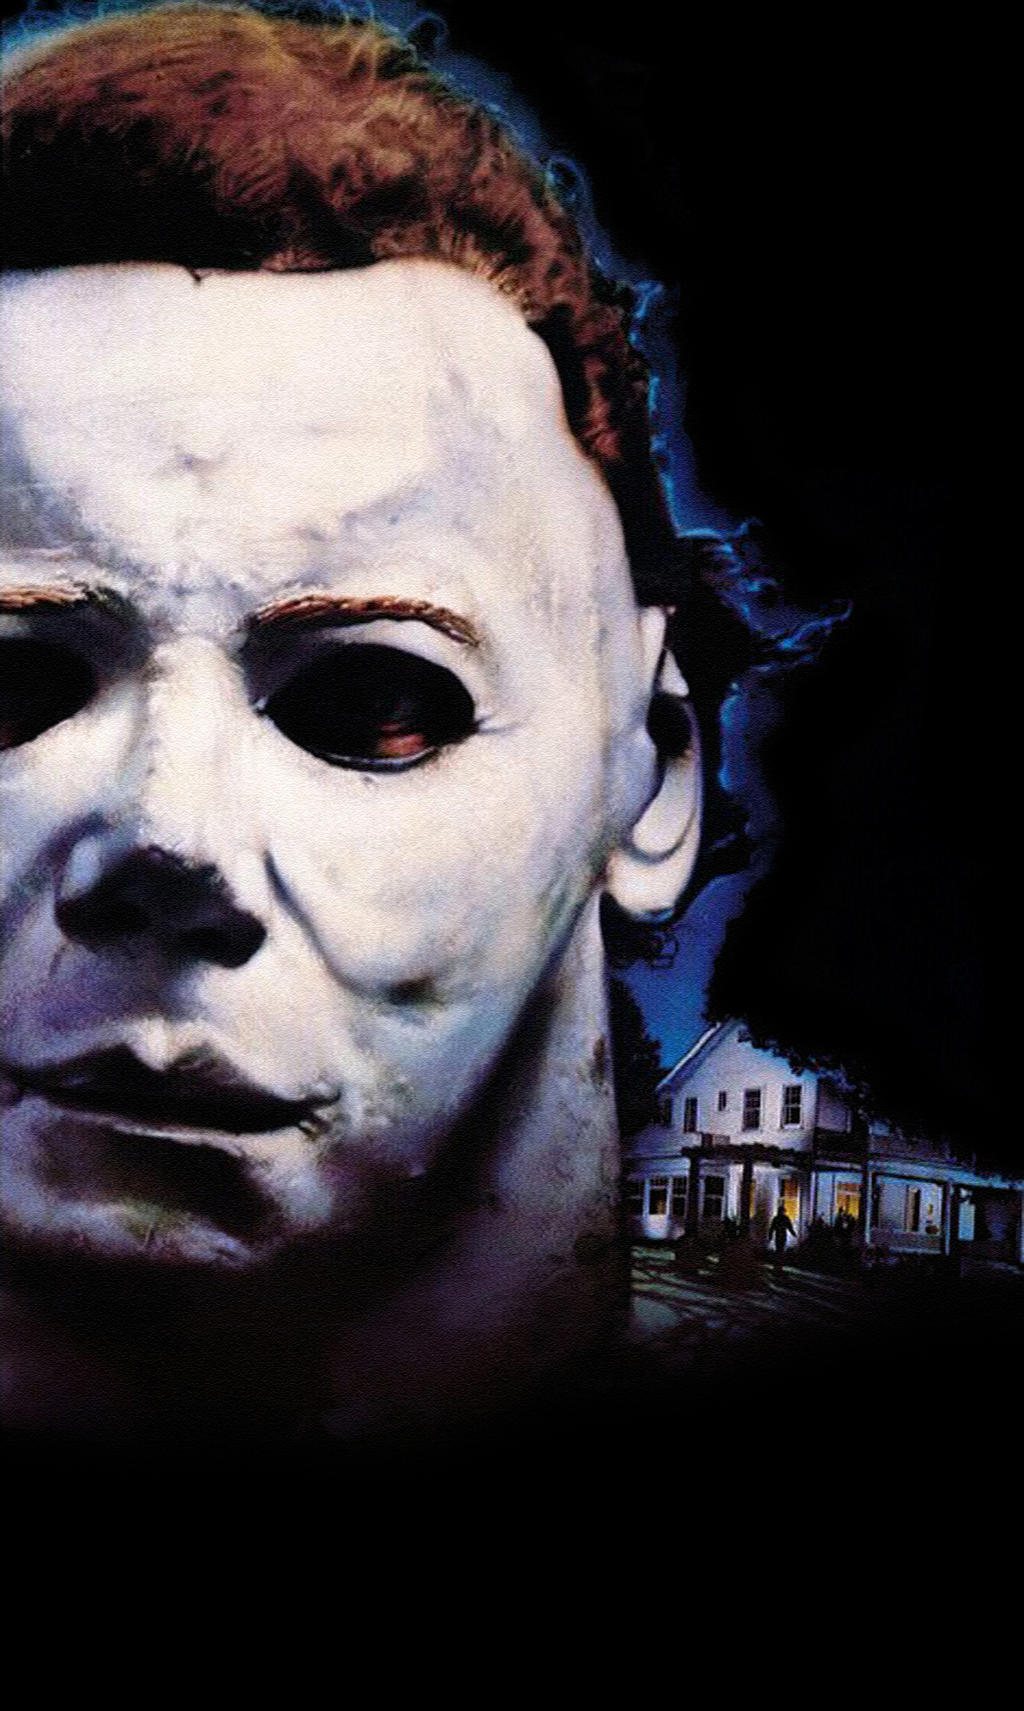 Halloween-4-The-Return-of-Michael-Myers poster by ...